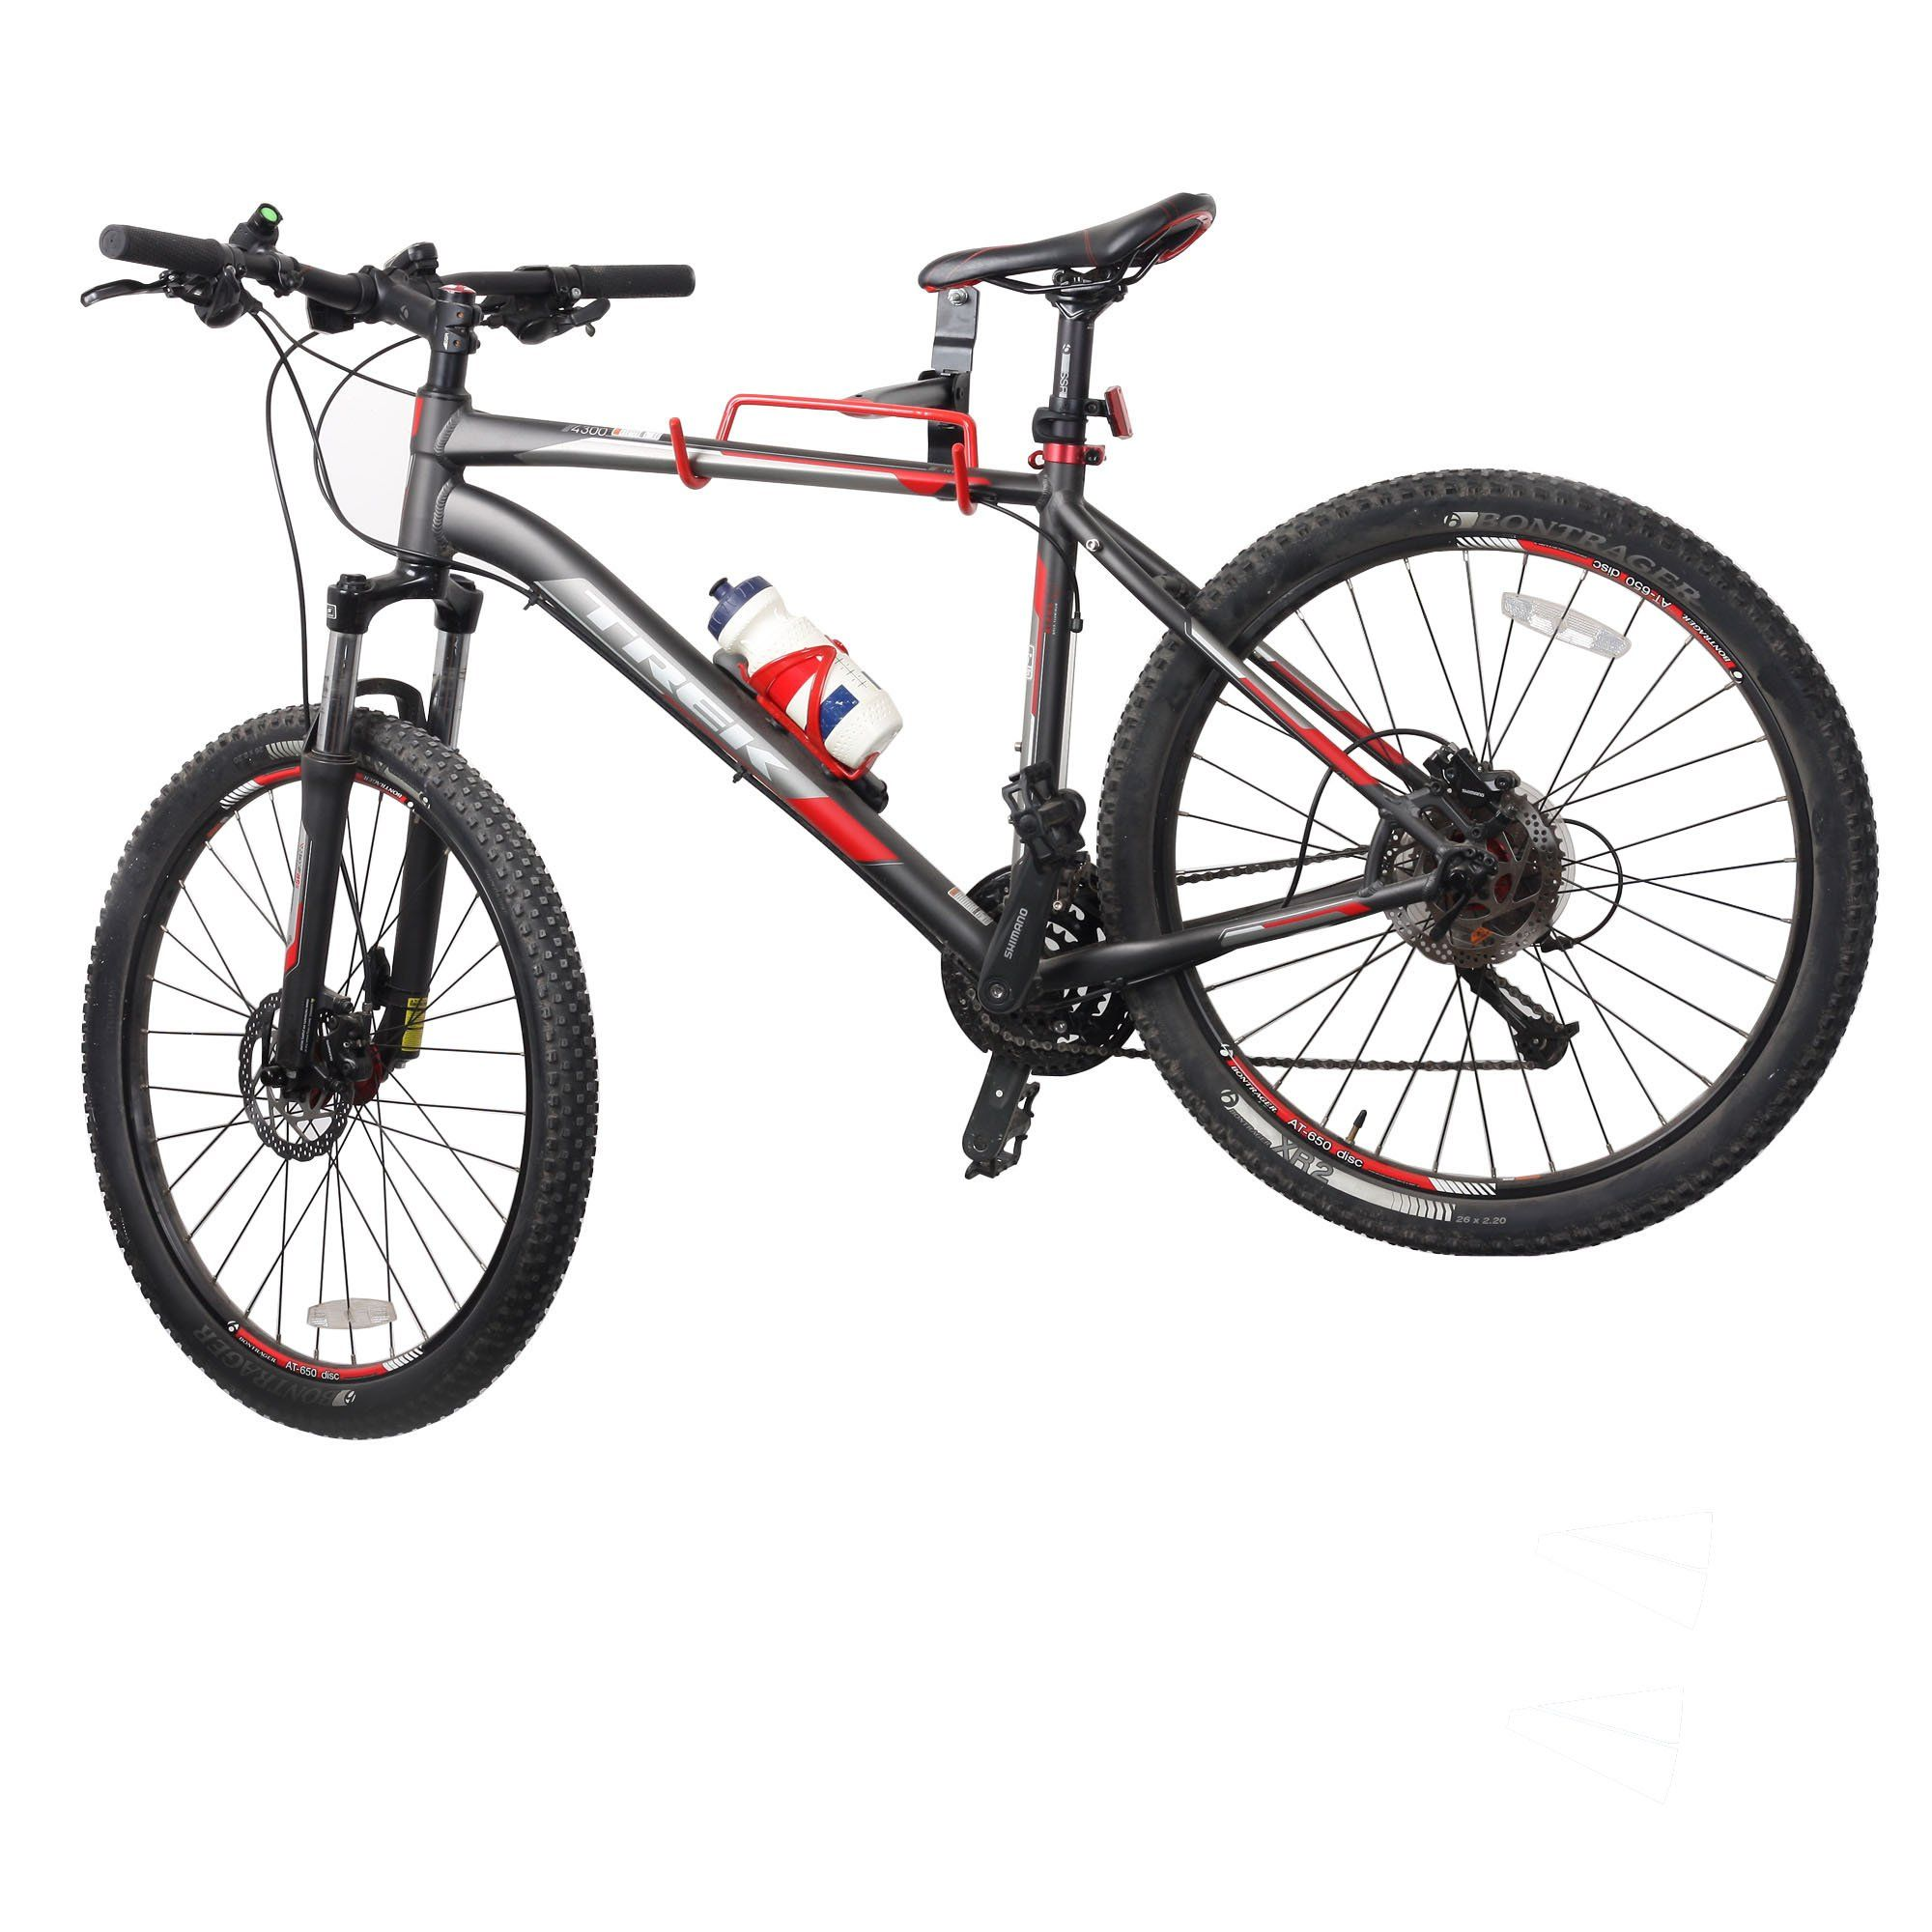 rhamazoncom public cancel cycle a own stand ef products leave build rack amazoncom your service aluminum bike repair bb reply customer bfbicycle rad bikesrhpublicbikescom contact bicycle